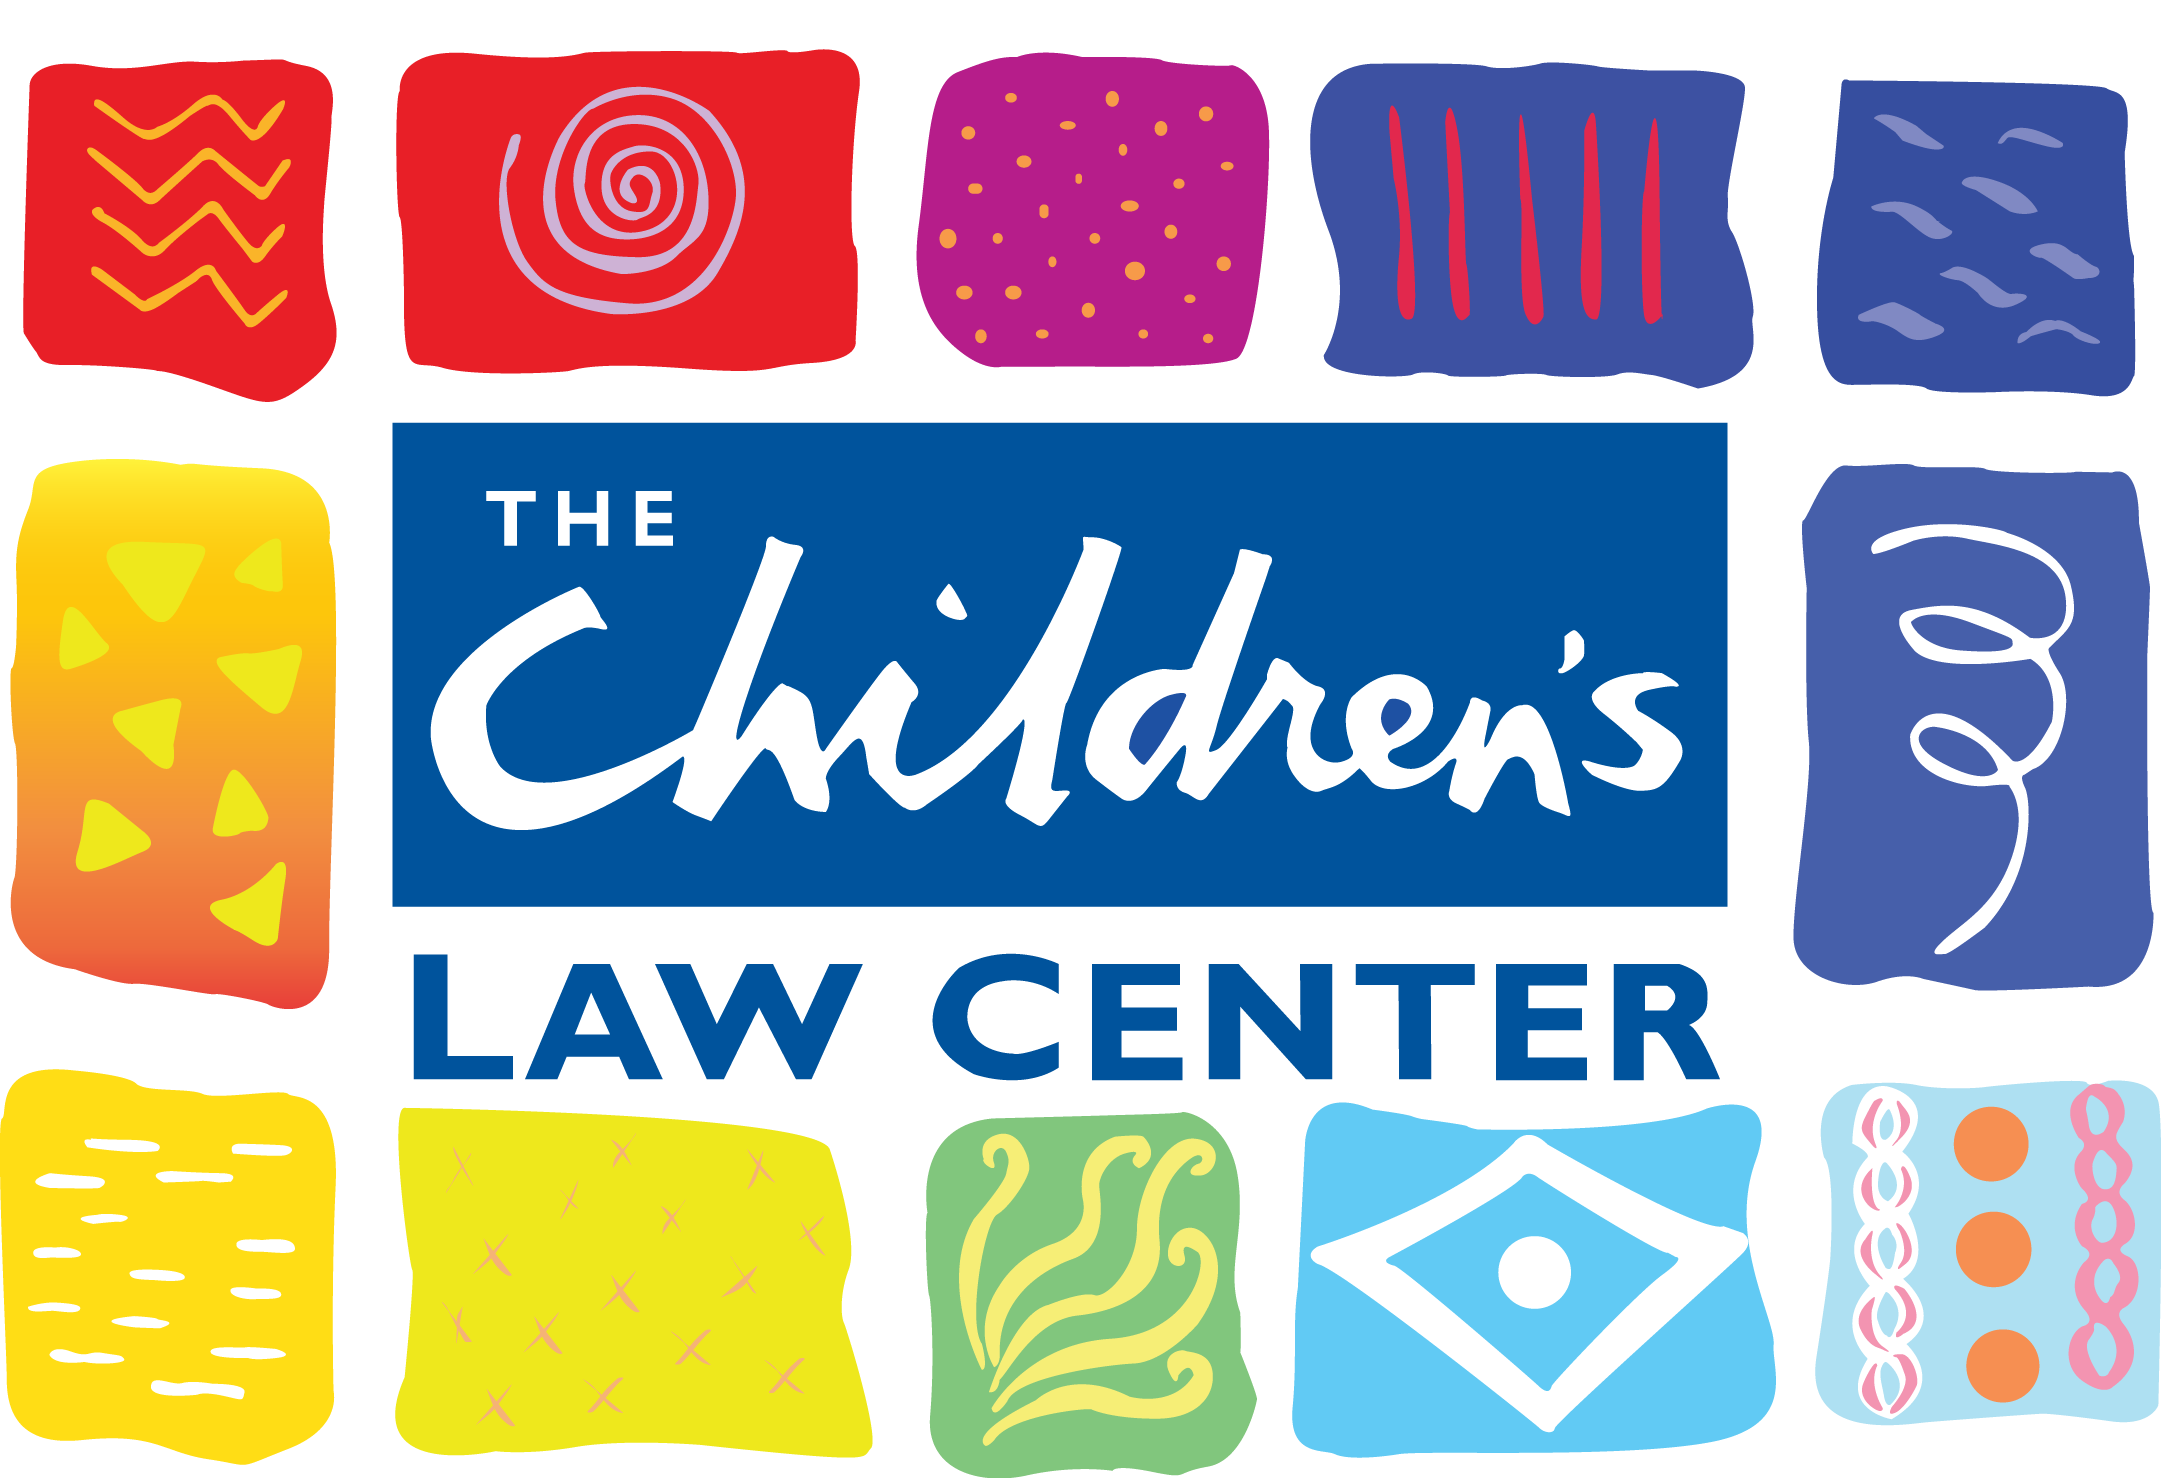 The Children's Law Center